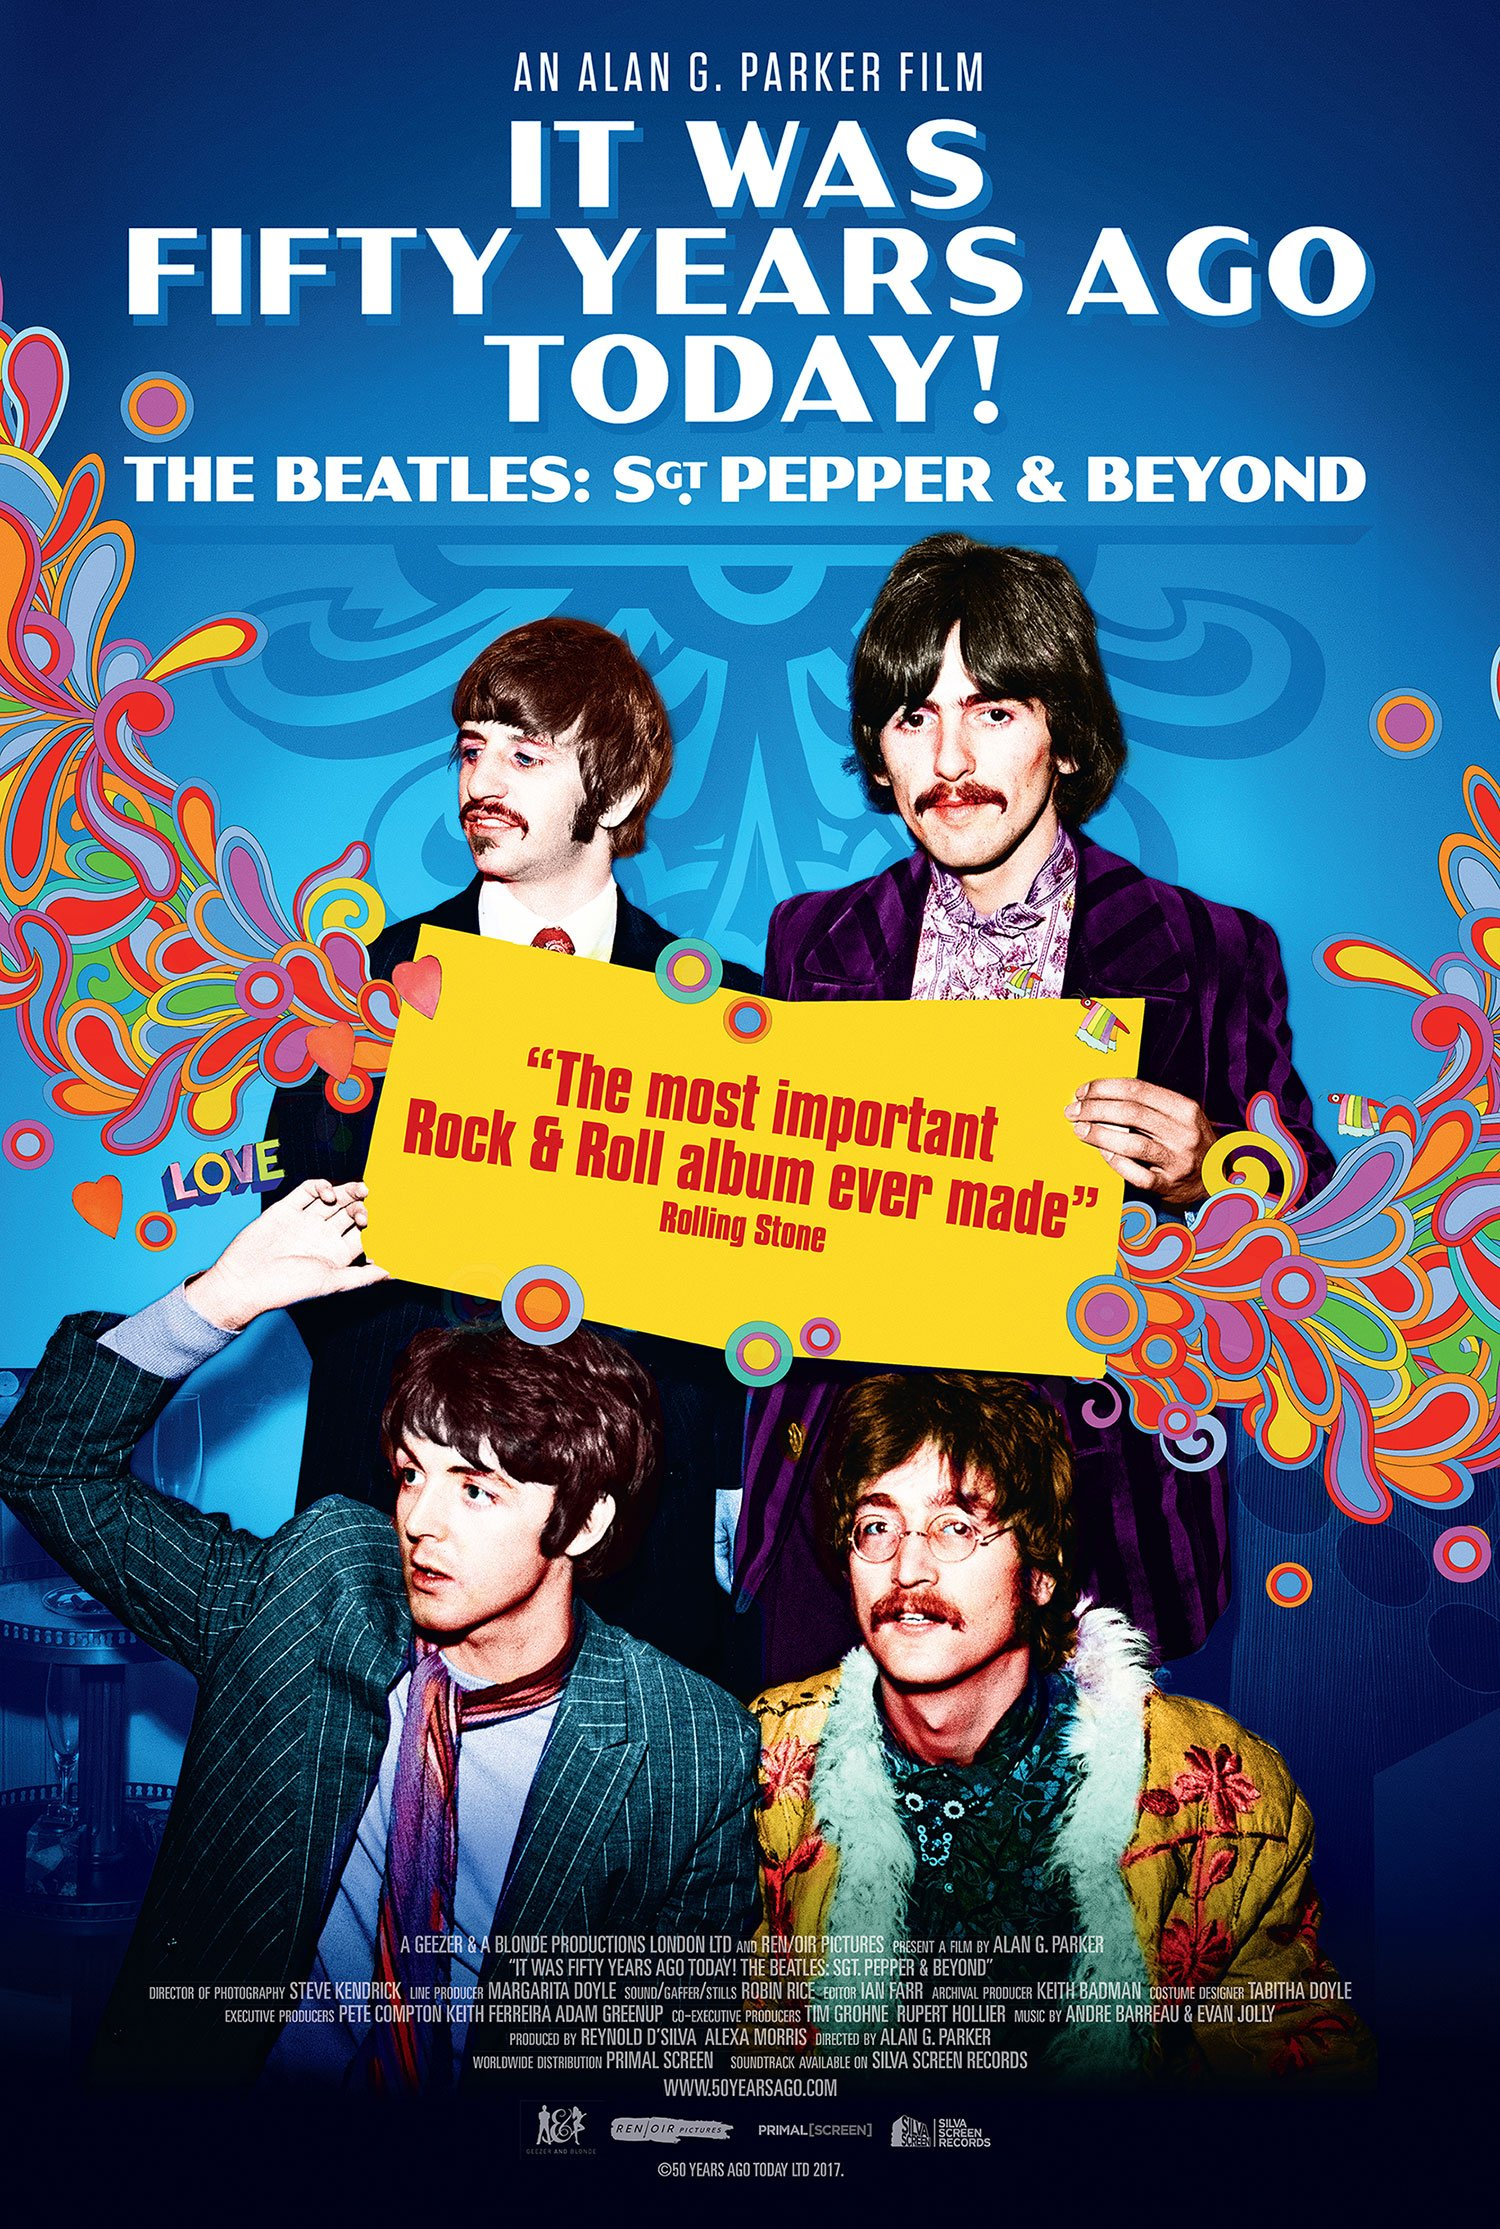 IT WAS FIFTY YEARS AGO TODAY! THE BEATLES SGT. PEPPER & BEYOND poster